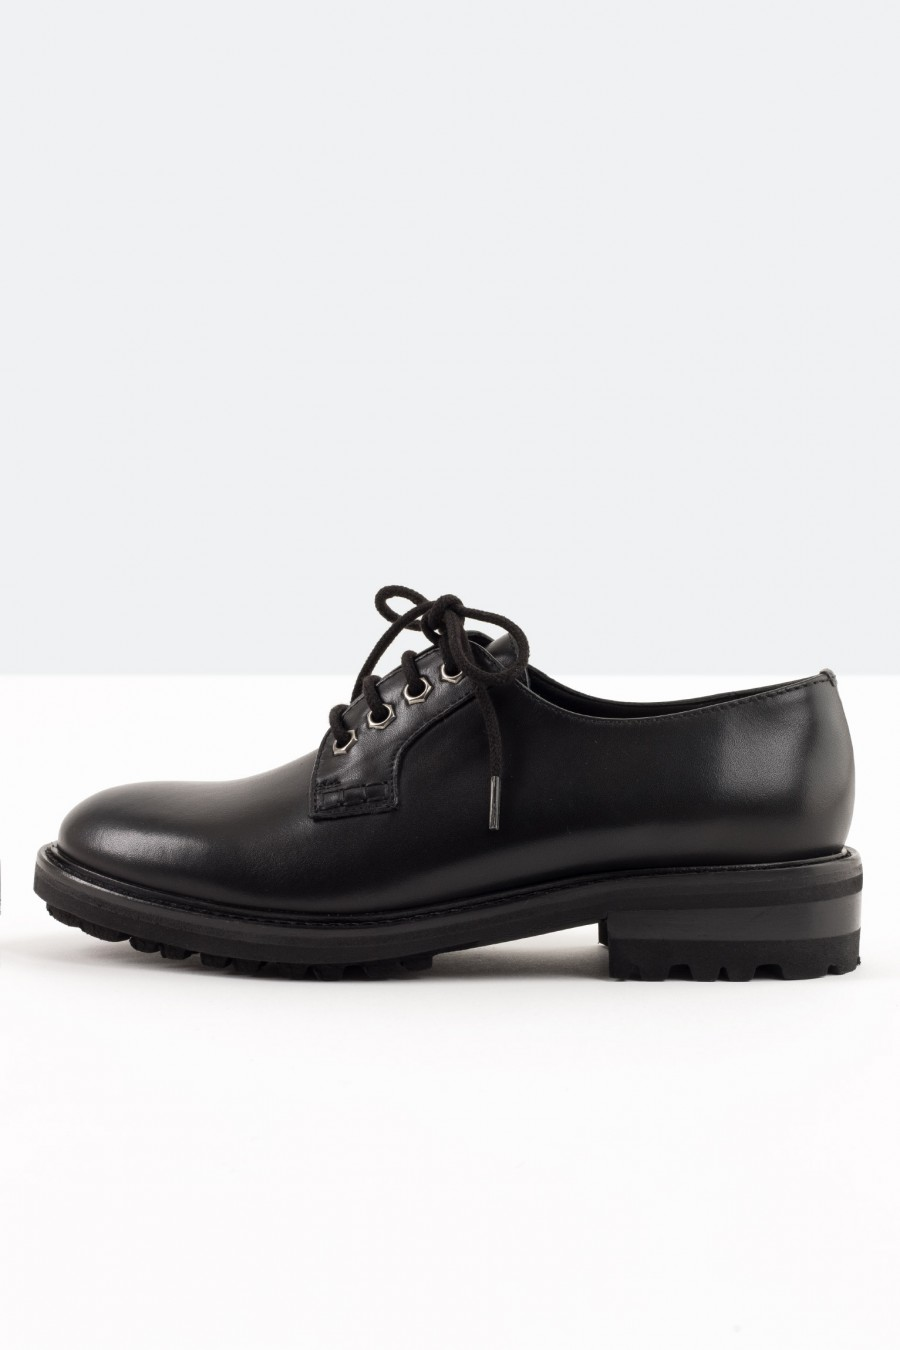 Lazzari derby shoes